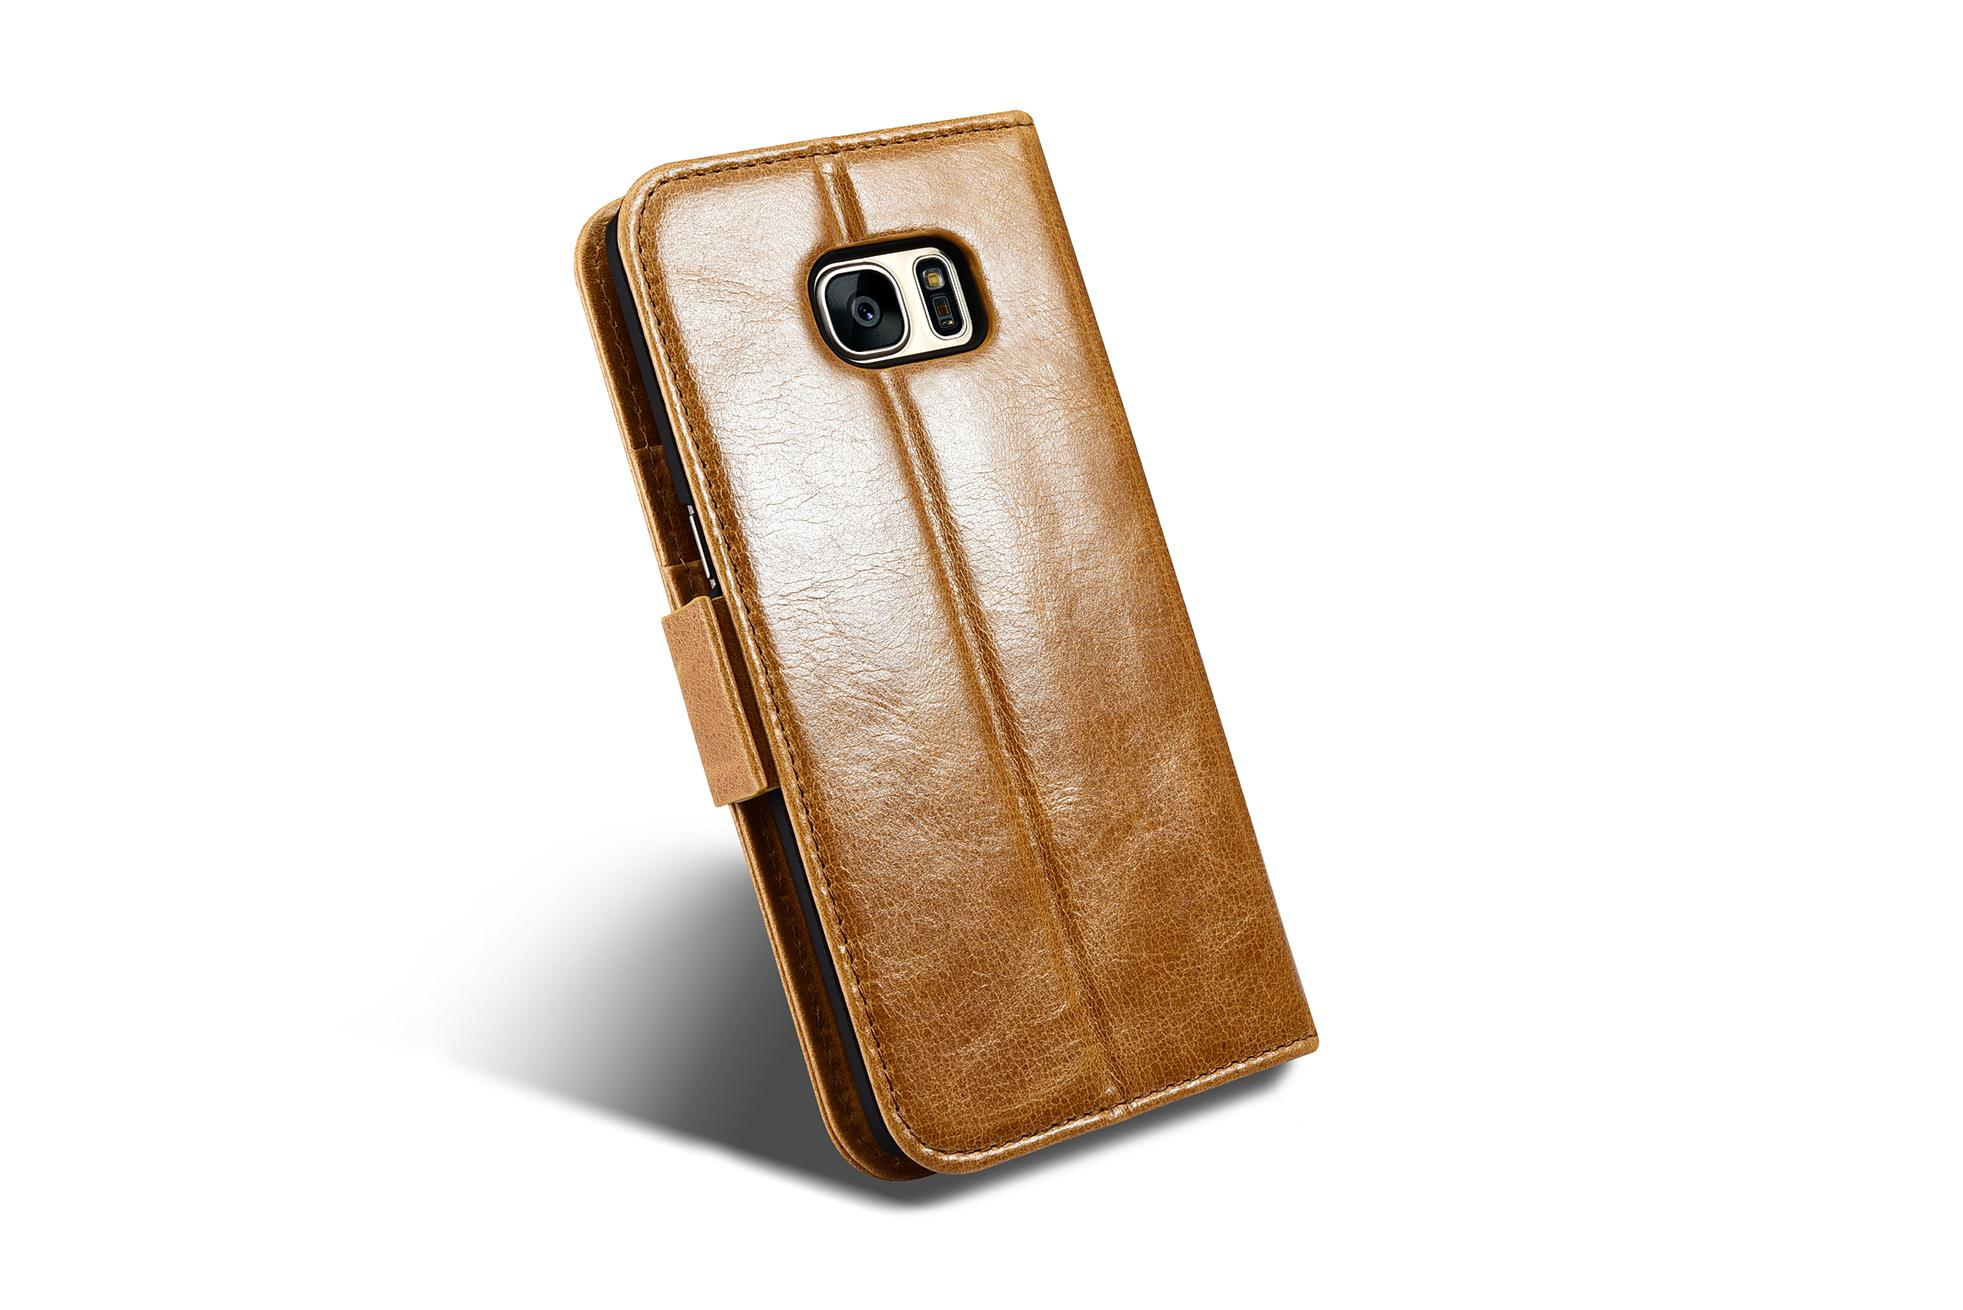 iCarer Samsung Galaxy S7 Edge Leather Detachable 2 in 1 Wallet Folio Case 7